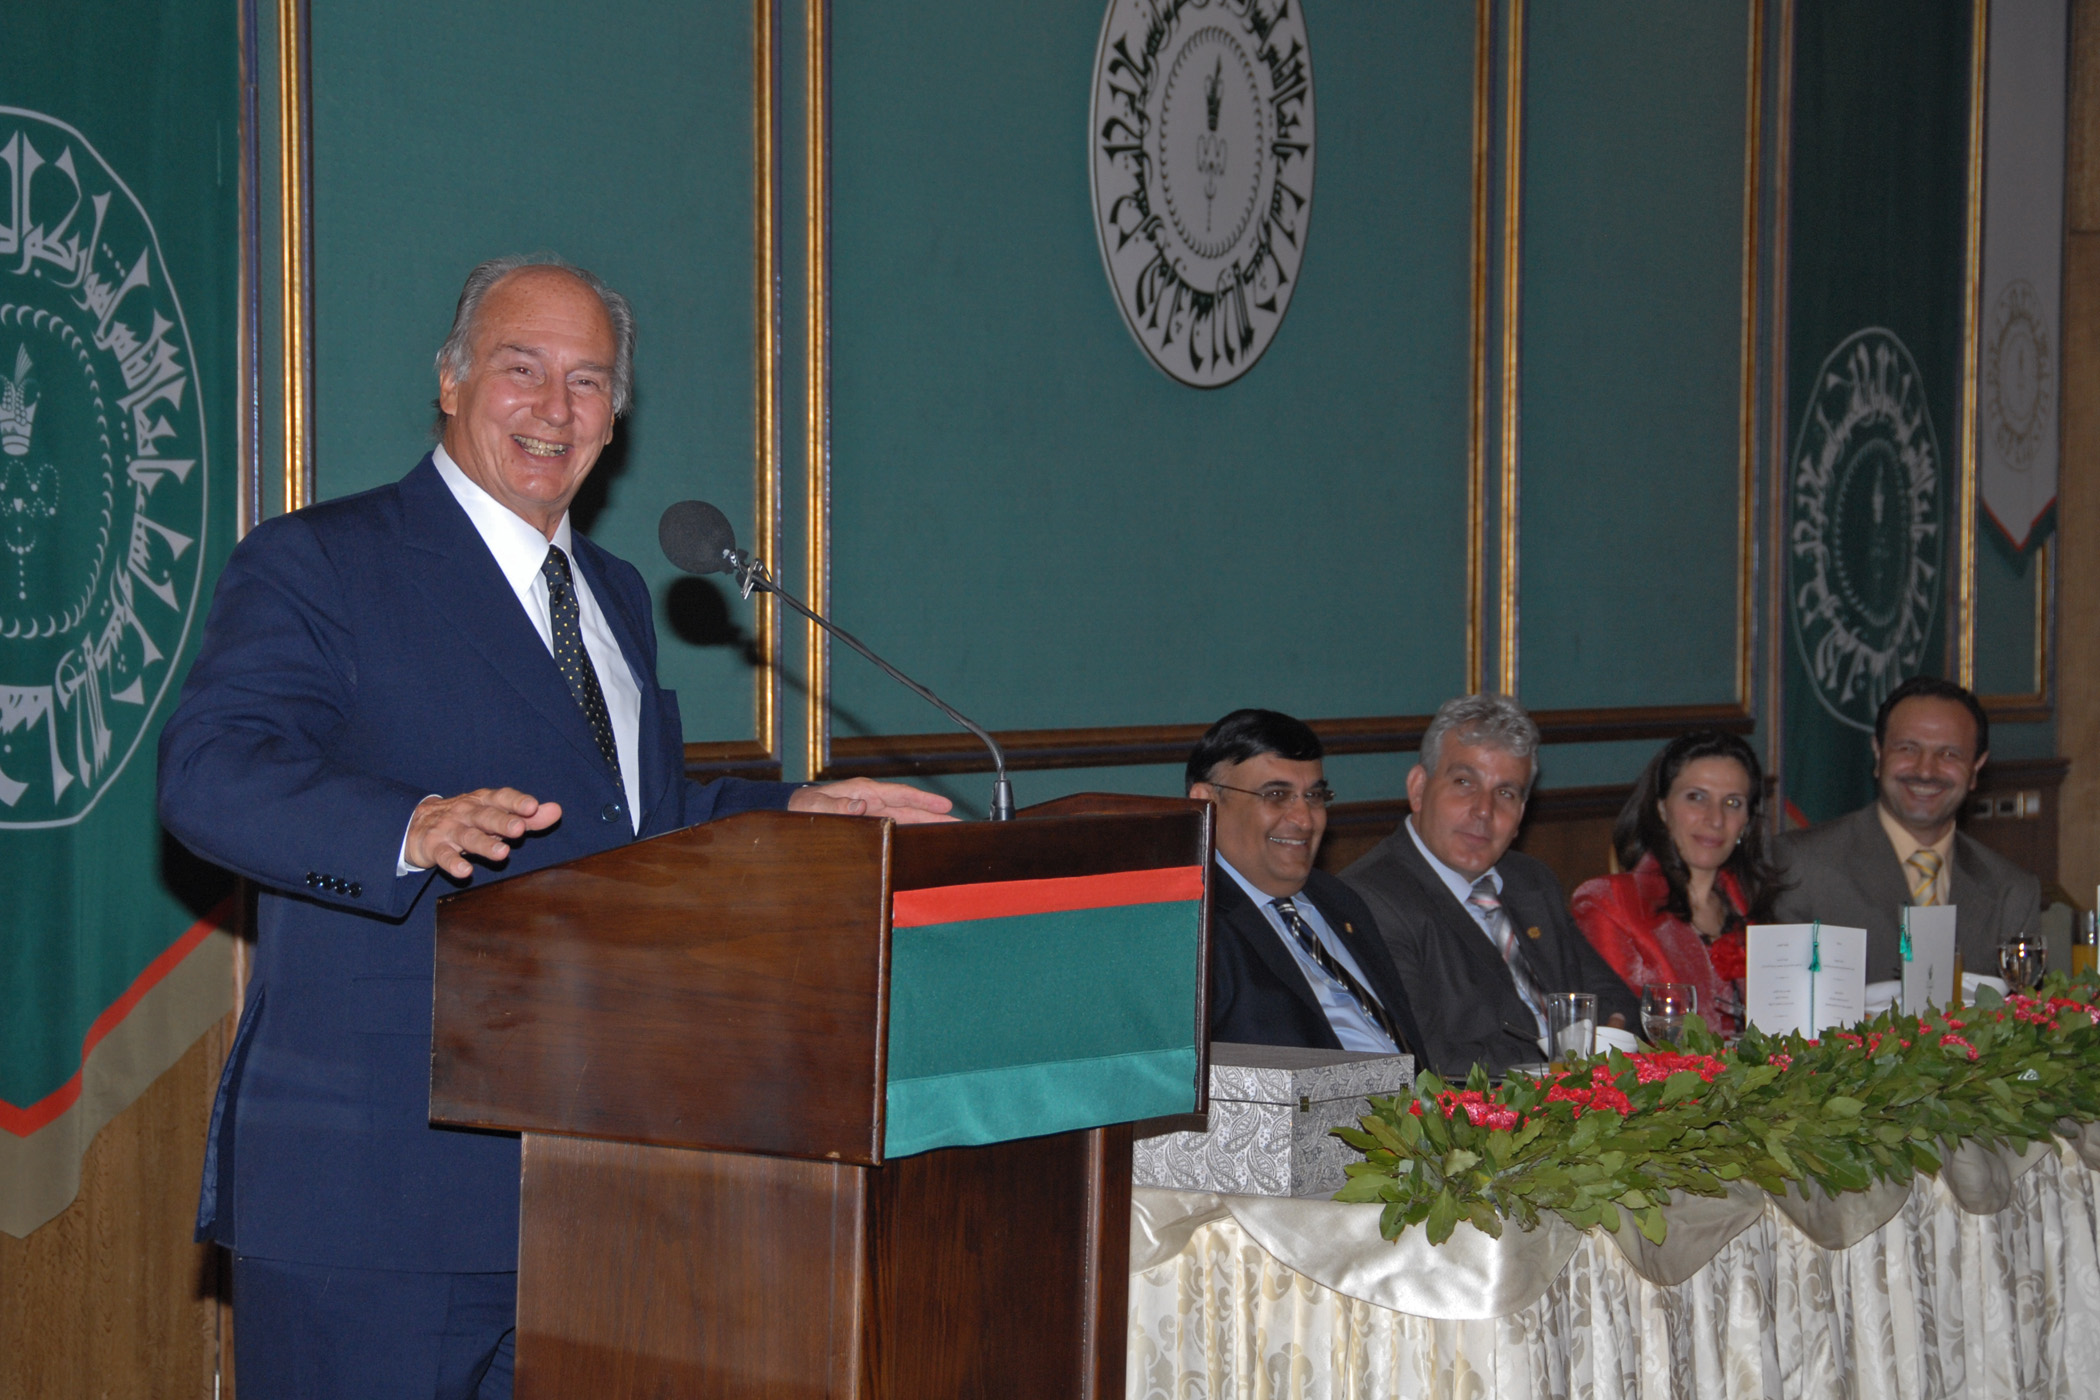 At the institutional dinner, Mawlana Hazar Imam expresses his happiness while addressing the Syrian Jamati leadership. Photo: Akbar Hakim